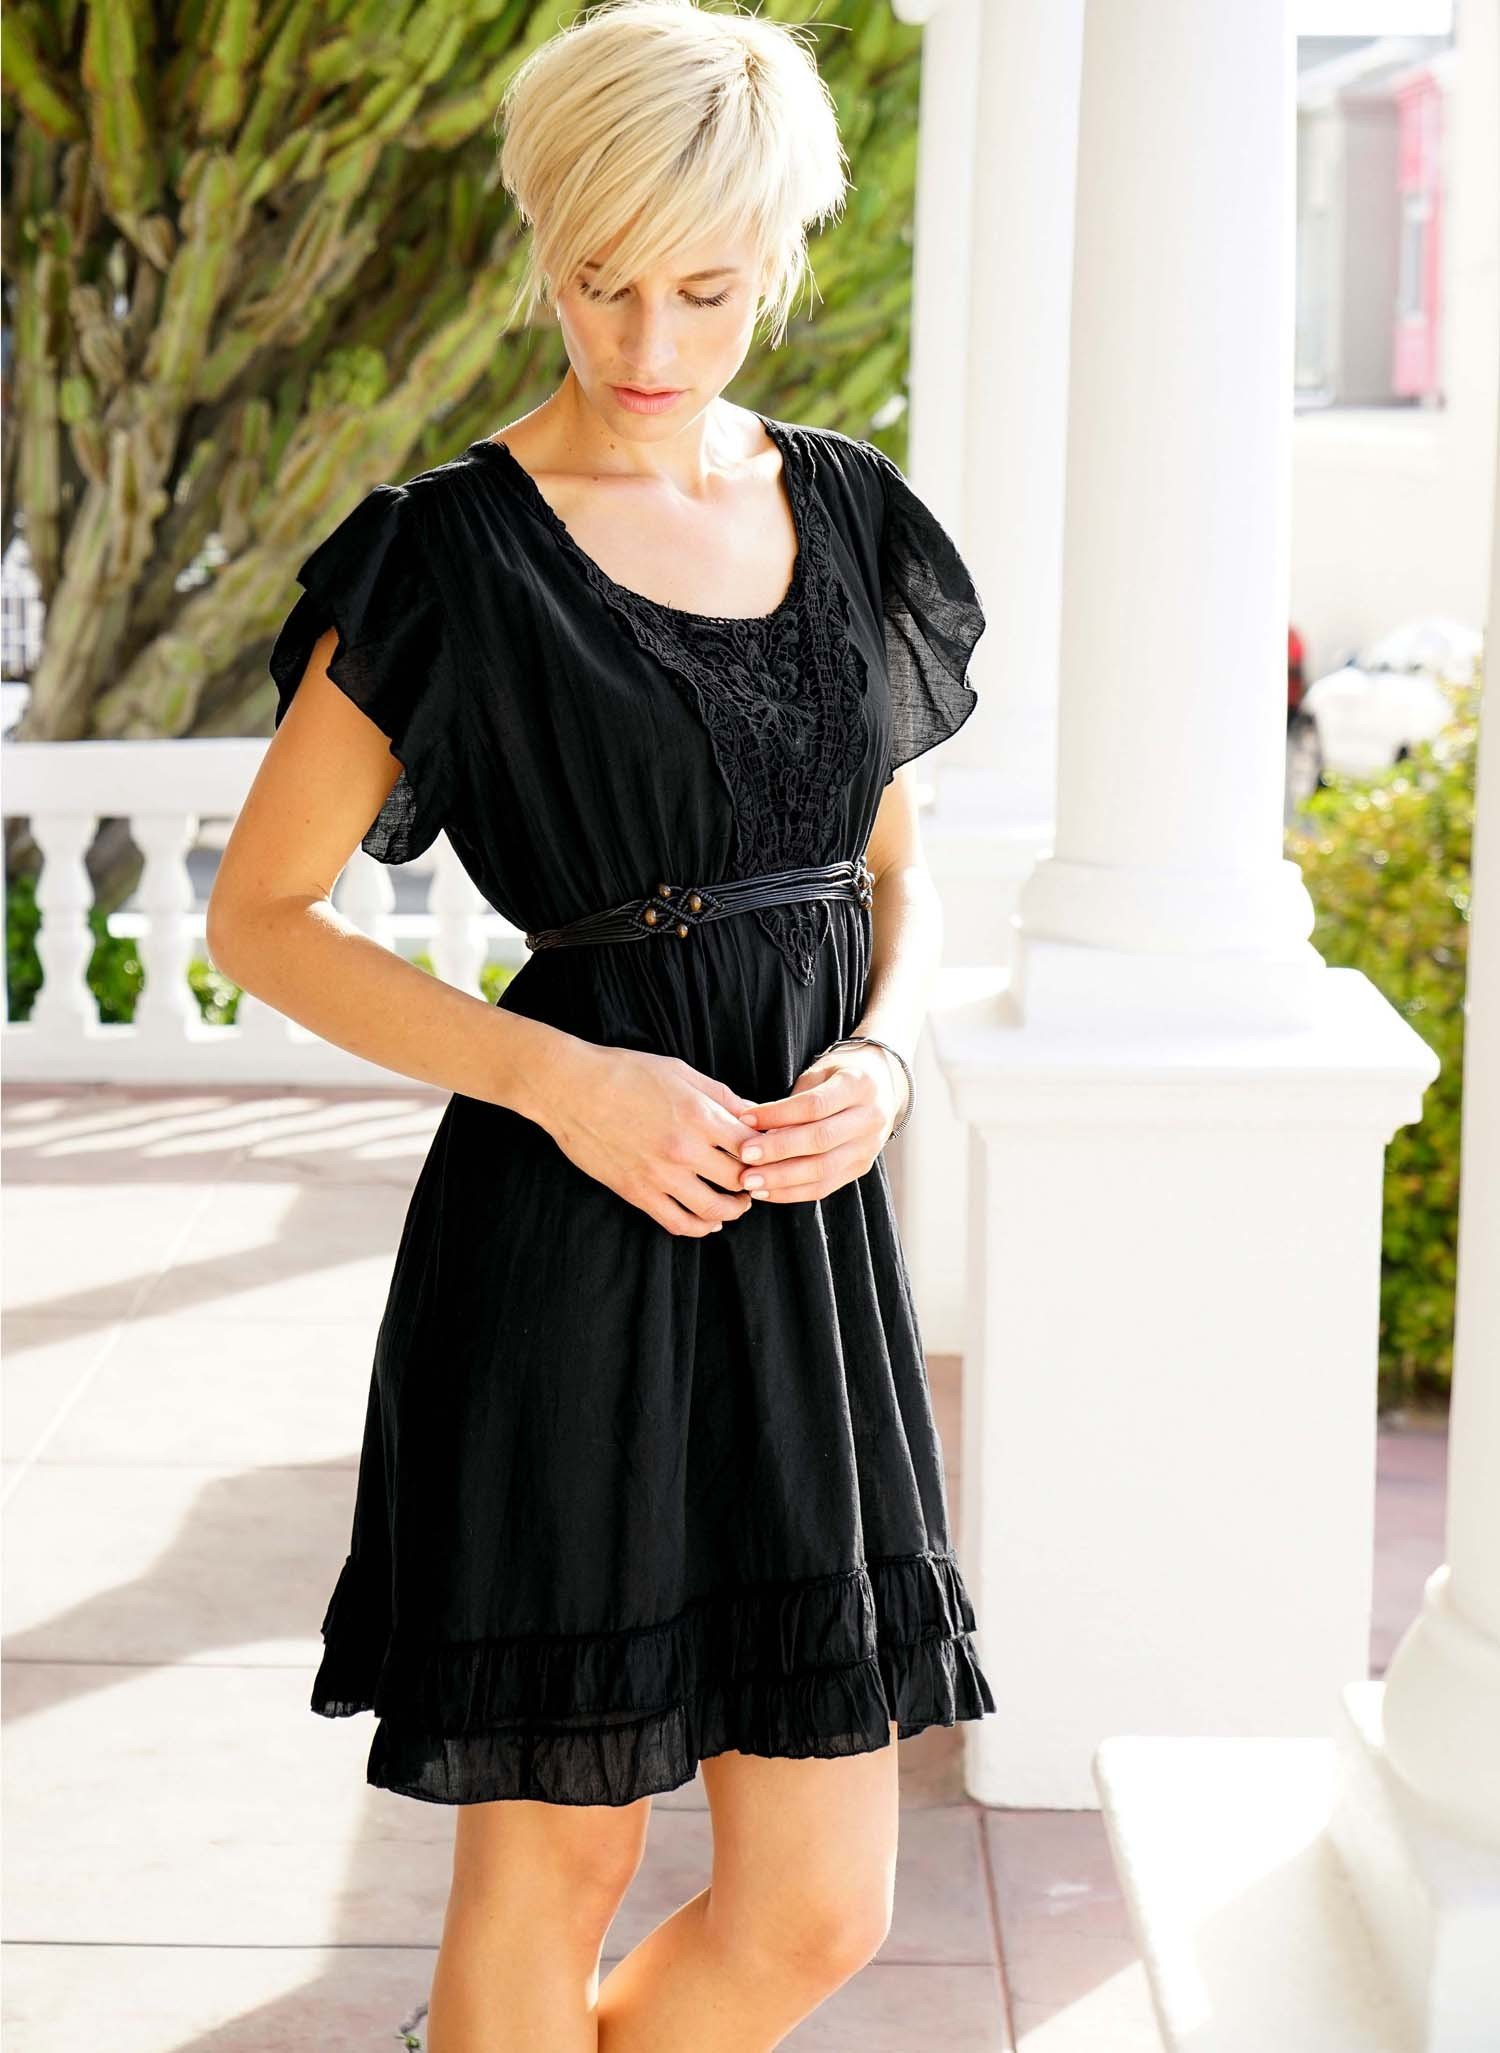 D-Country-Kleid, schwarz L 010 - 2 - Ronja.ch